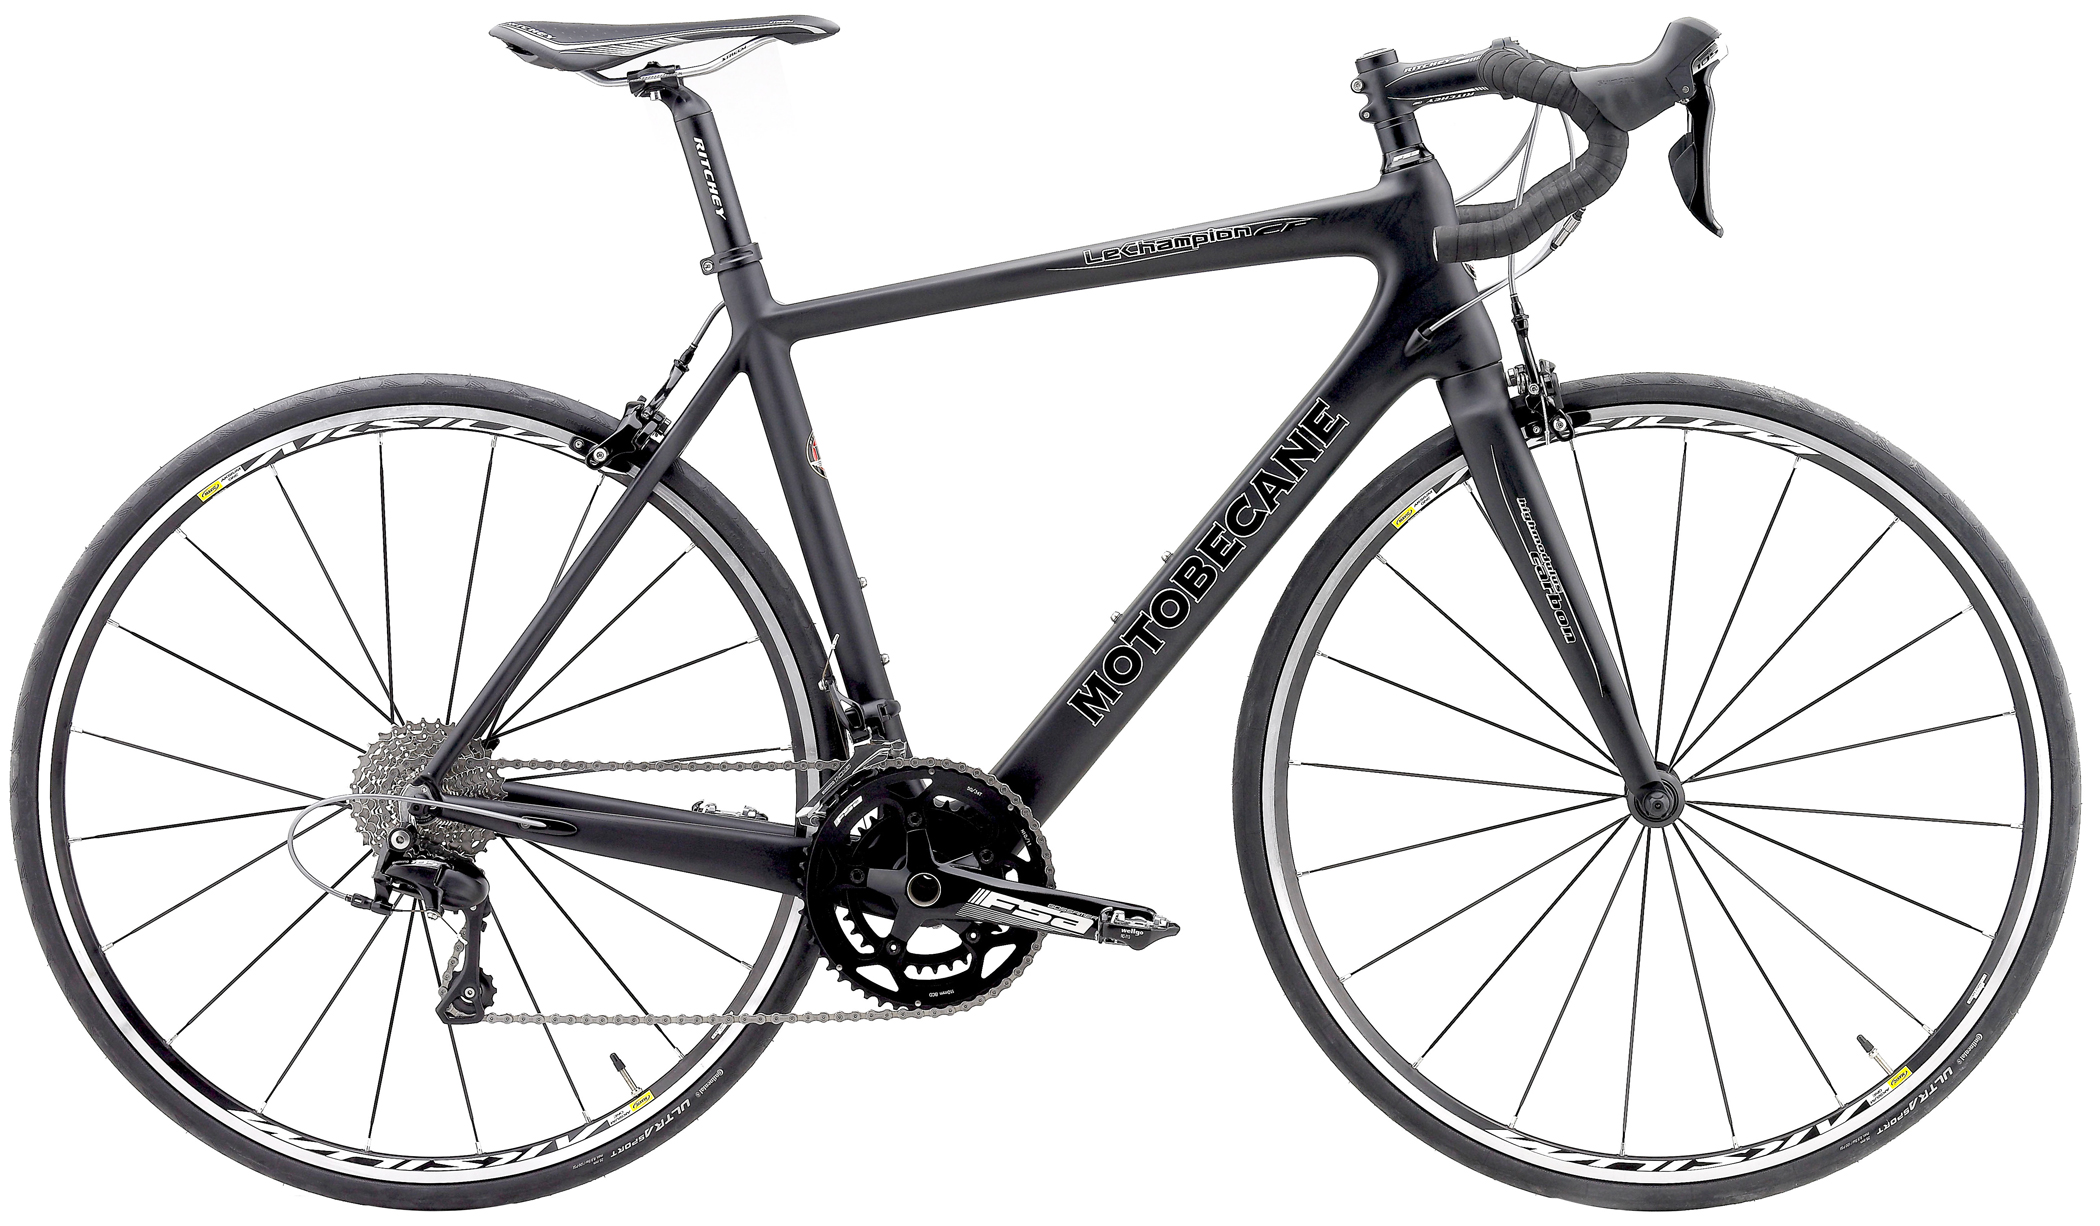 Motobecane Carbon Road Bike Reviews